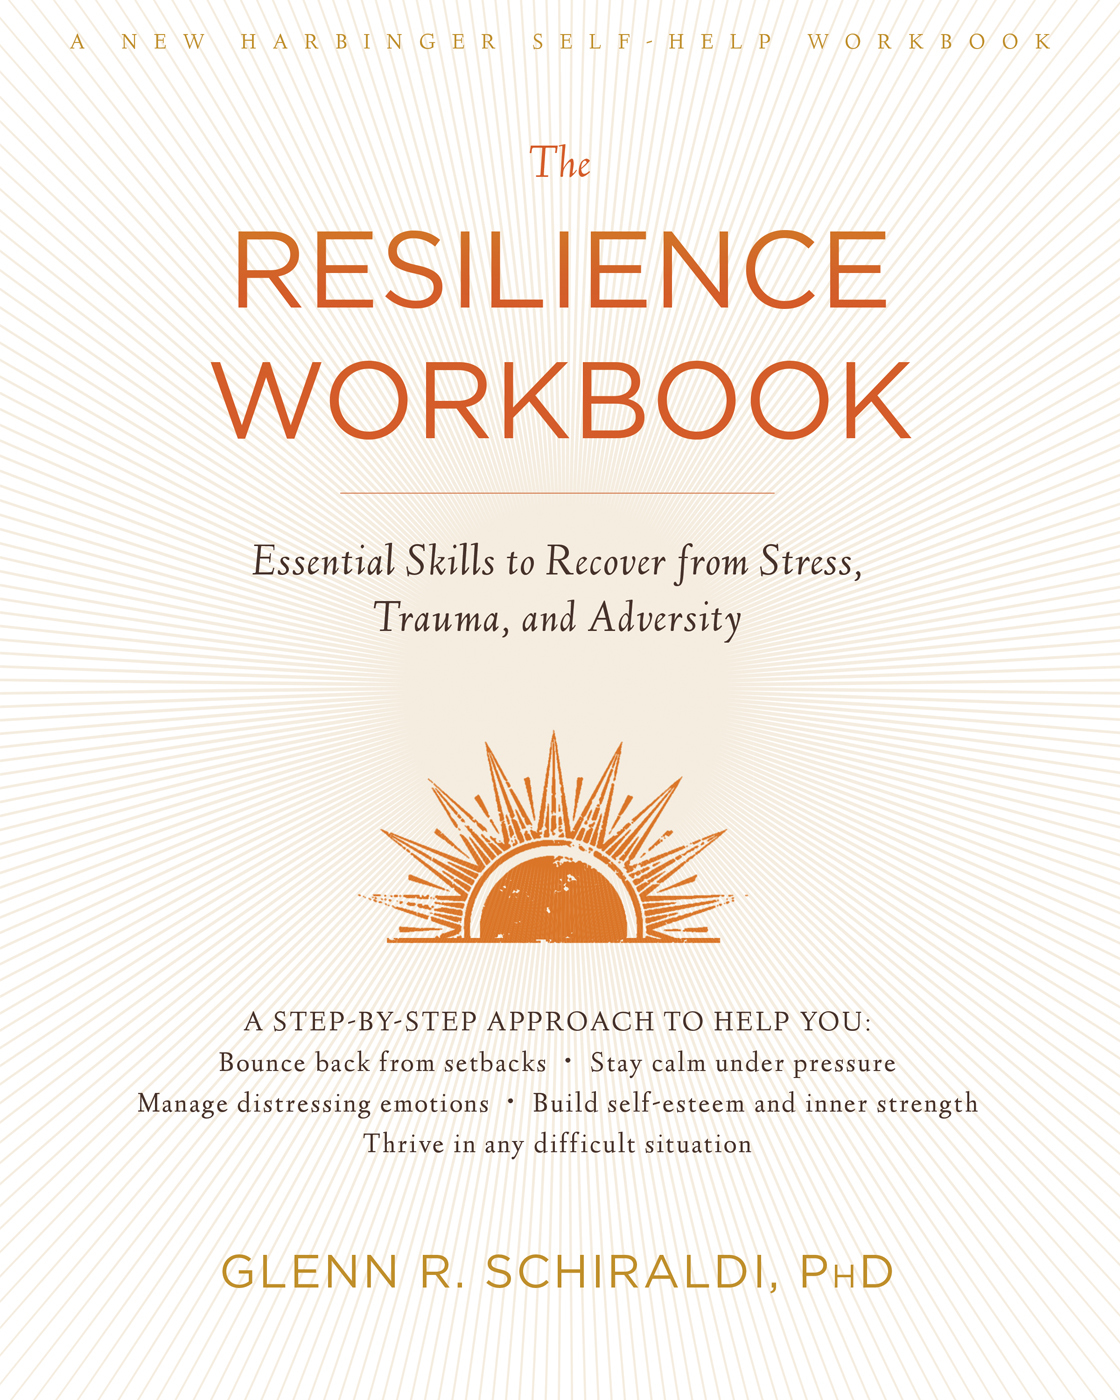 The Resilience Workbook Essential Skills to Recover from Stress, Trauma, and Adversity